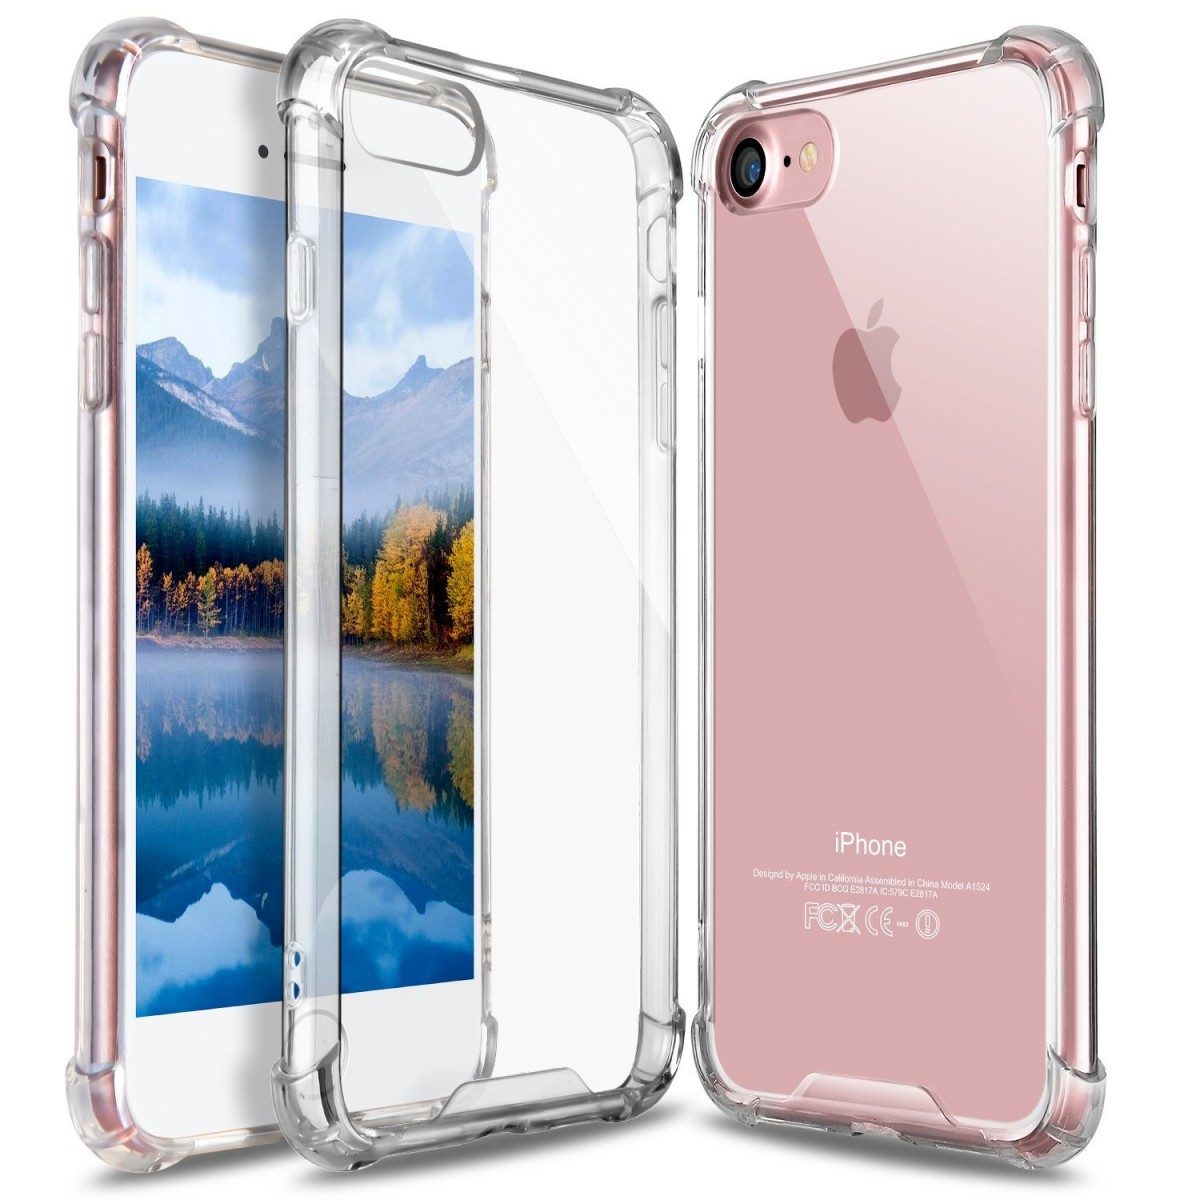 8 case iphone bumper